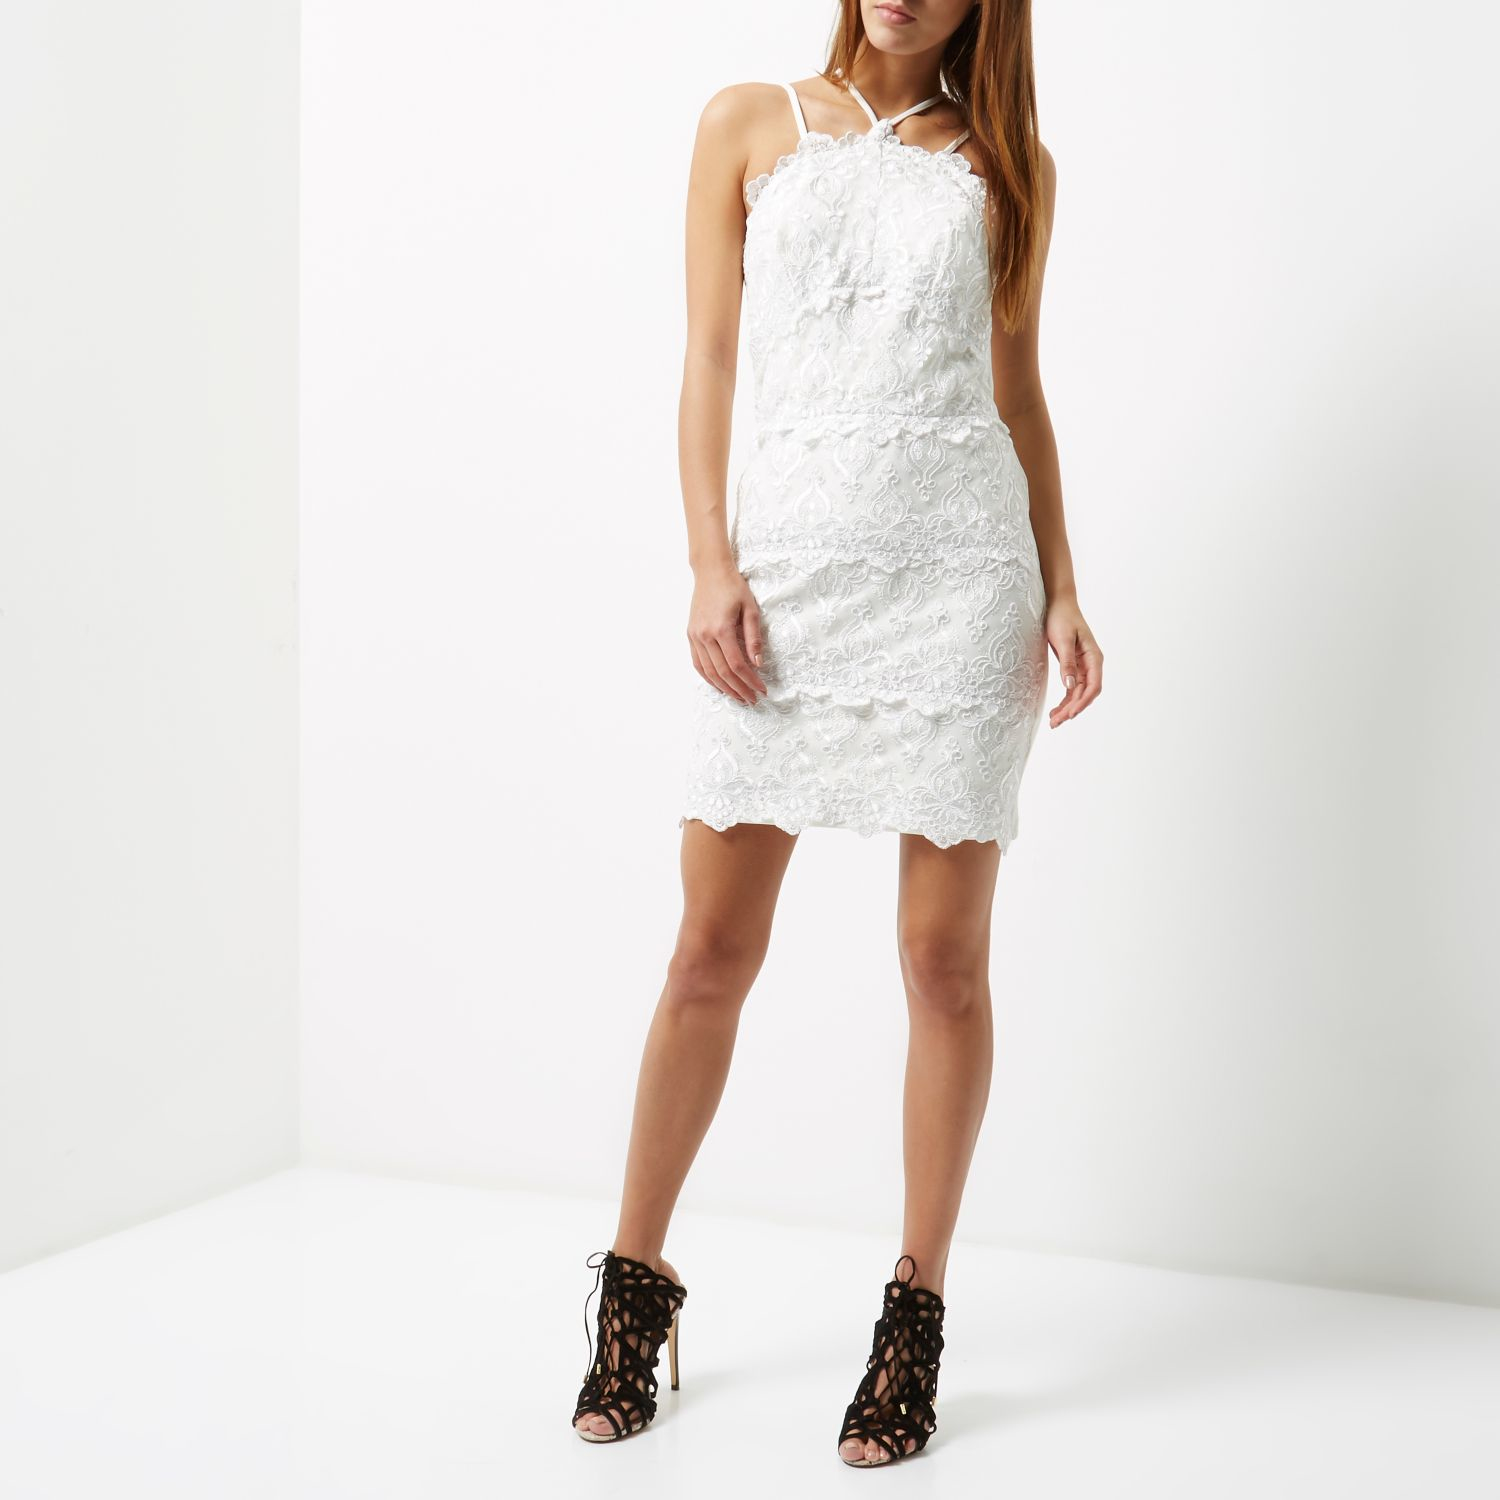 River Island Cream Mini Dress